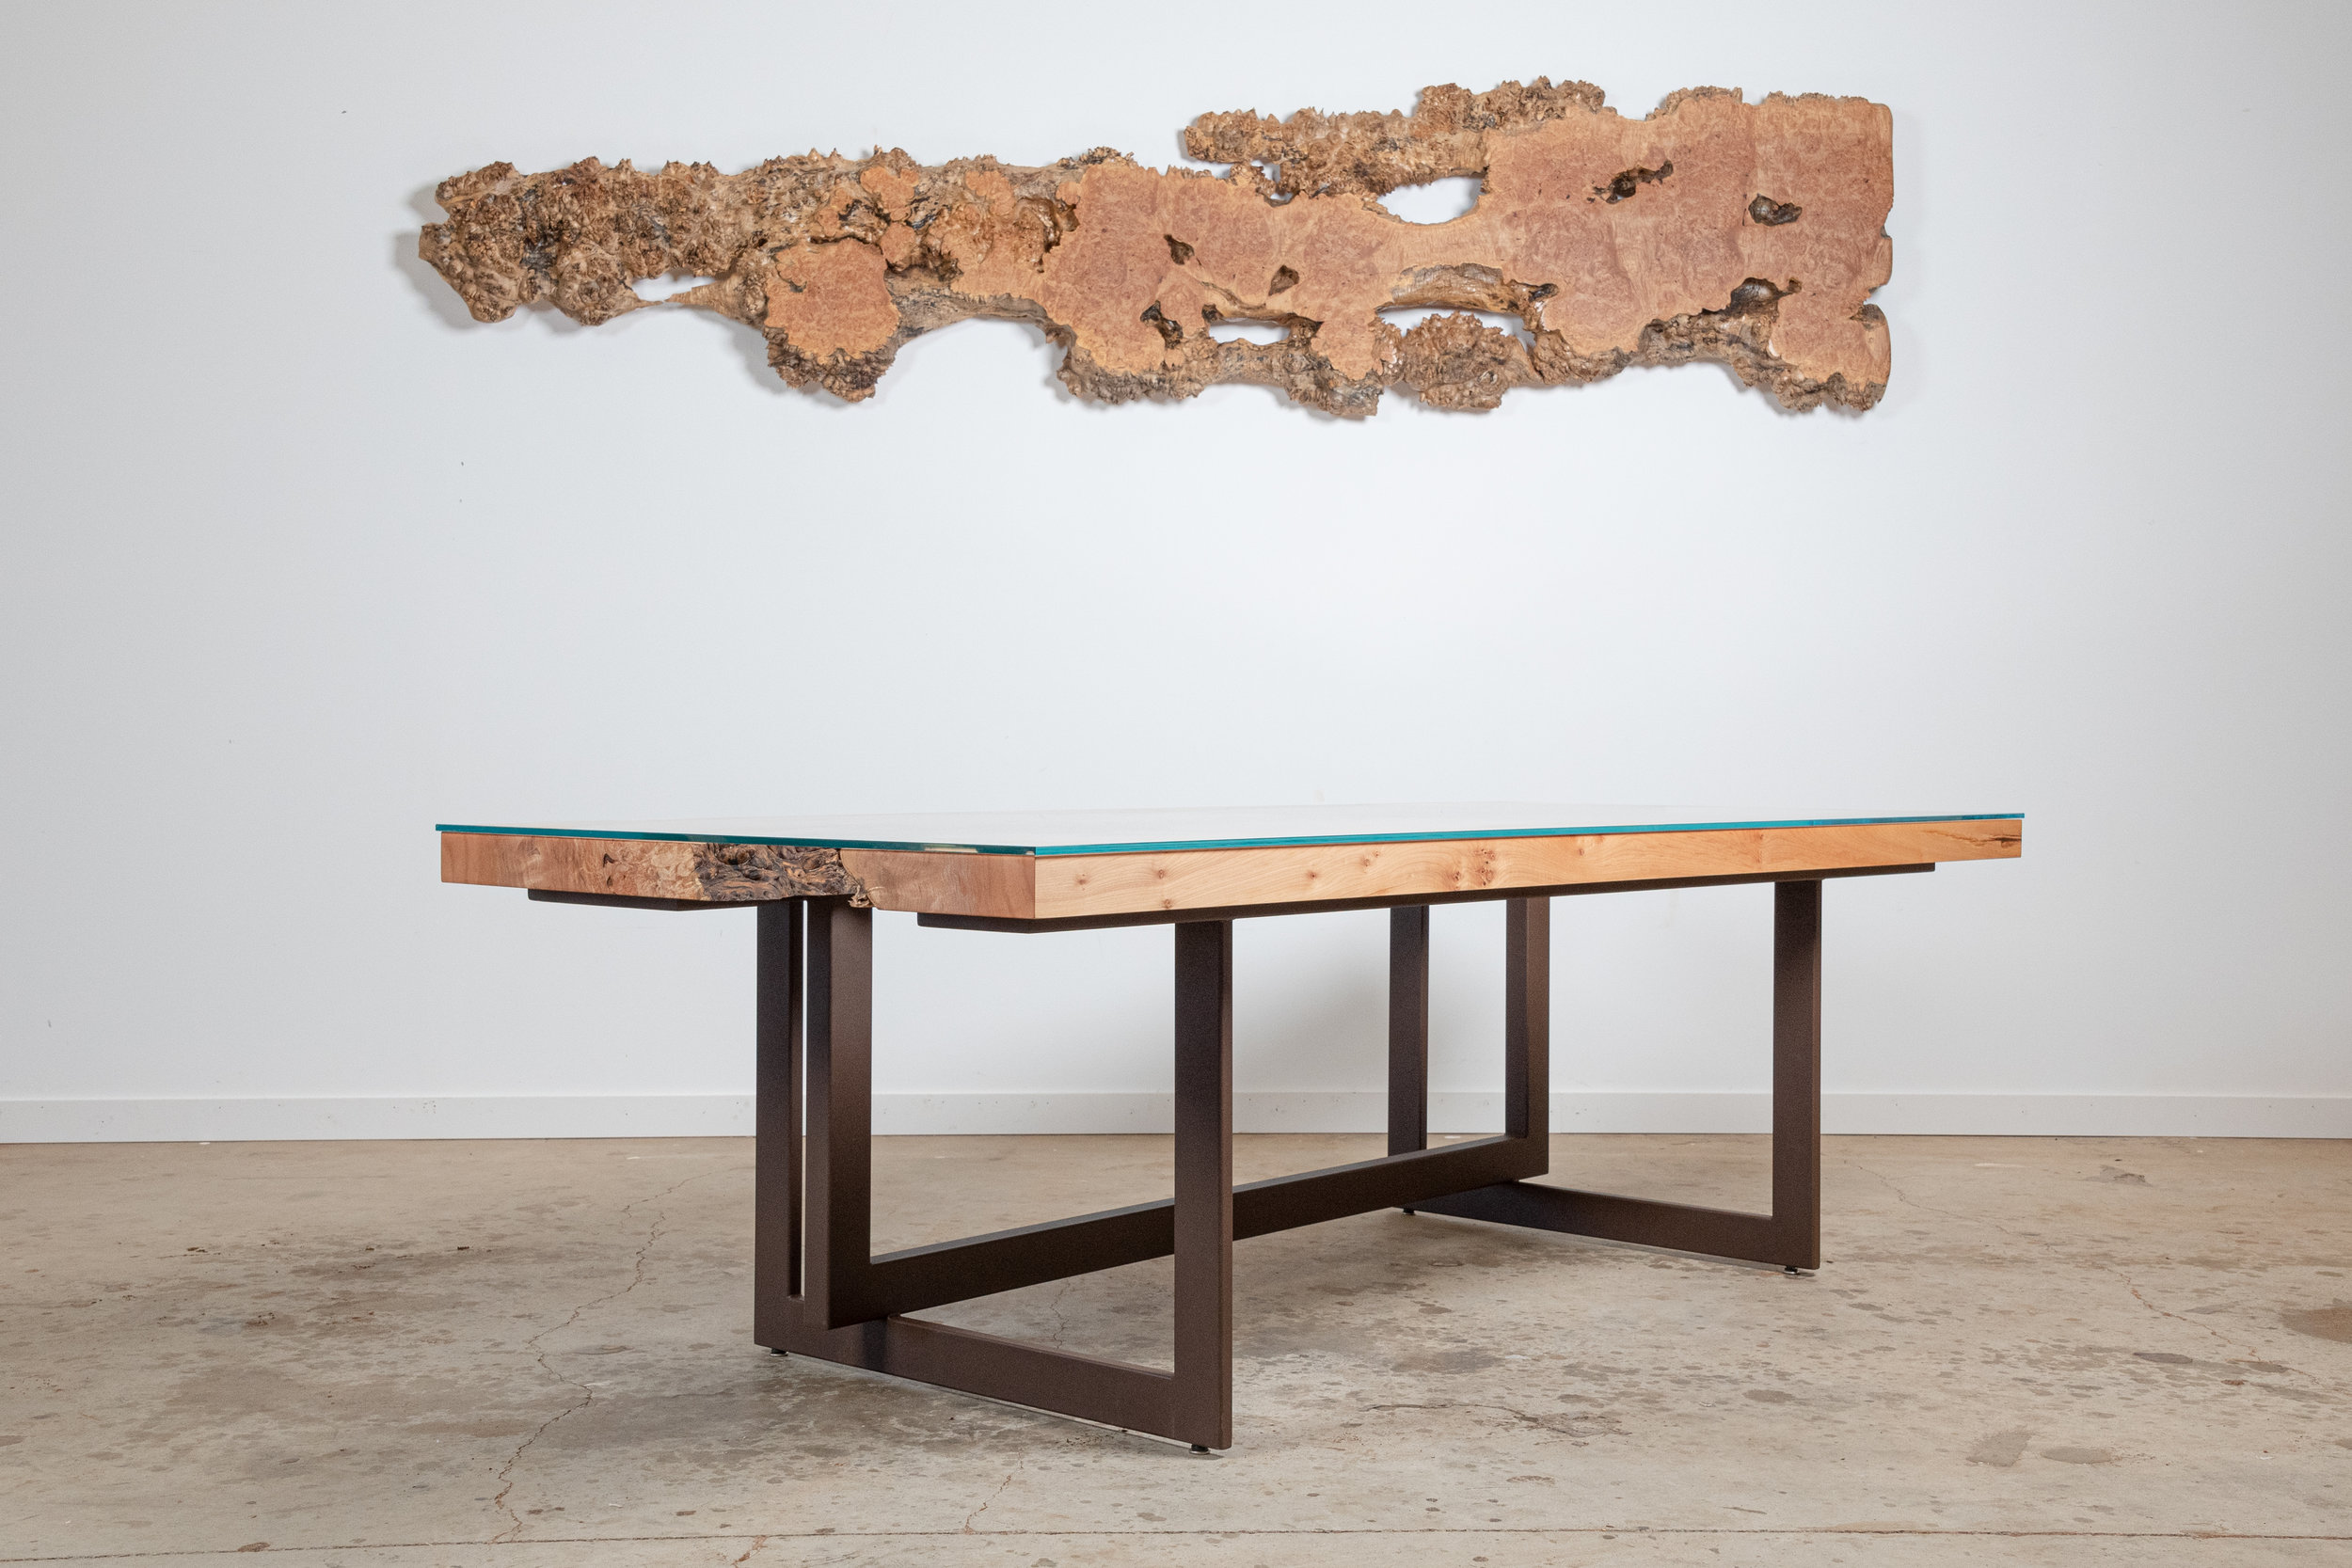 Burled Maple Air Canyon Dining Table - $17,000